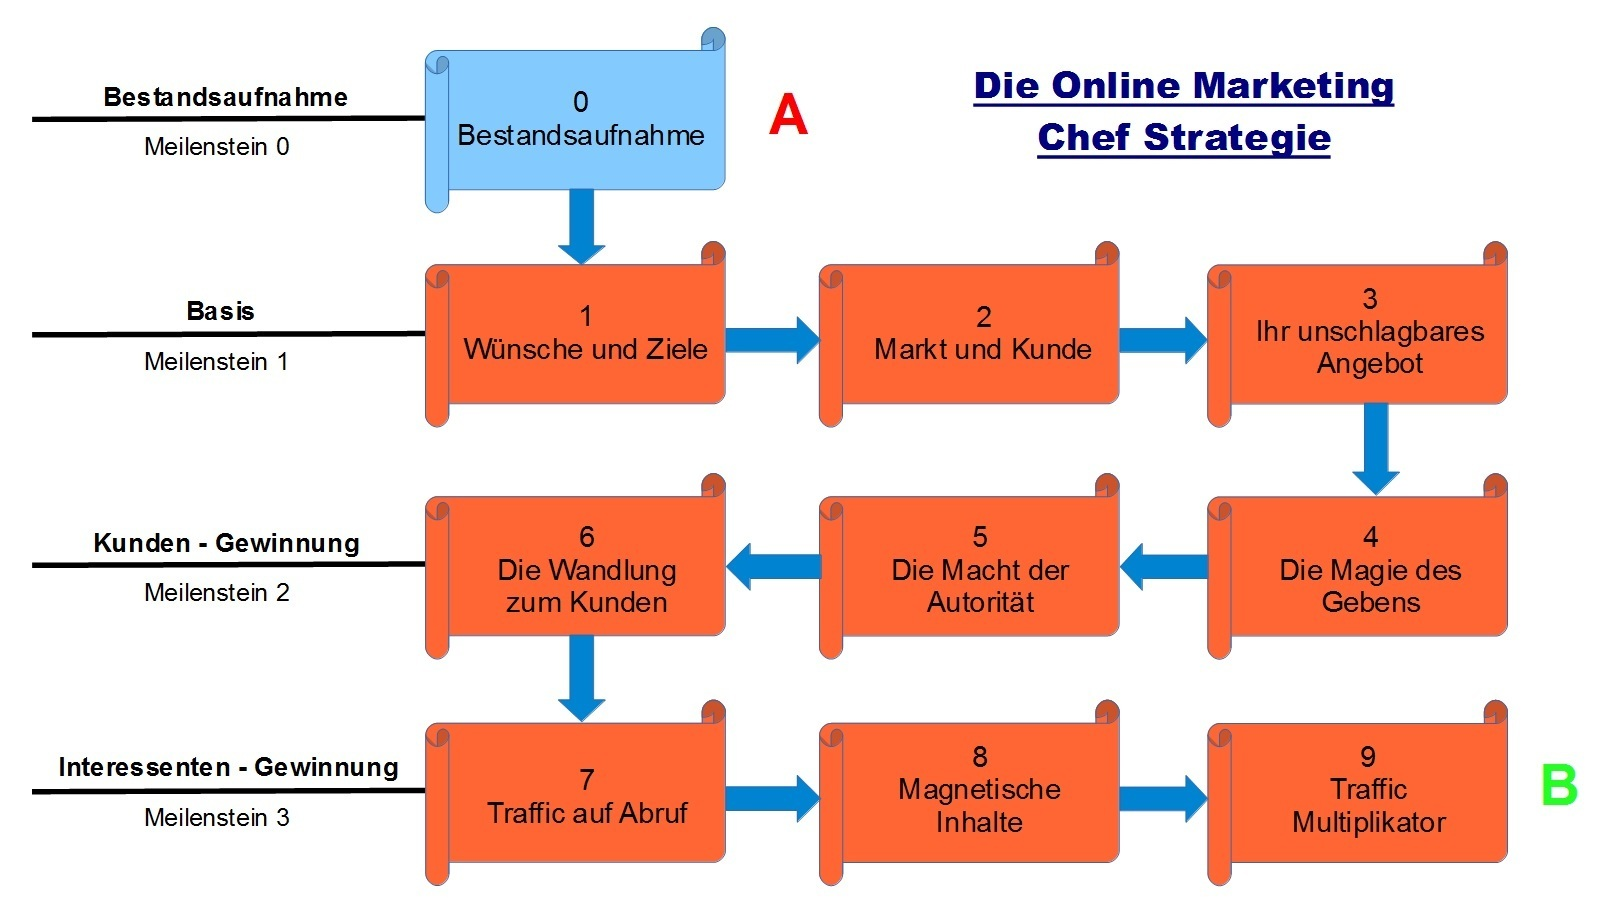 Die Online Marketing Chef Strategie